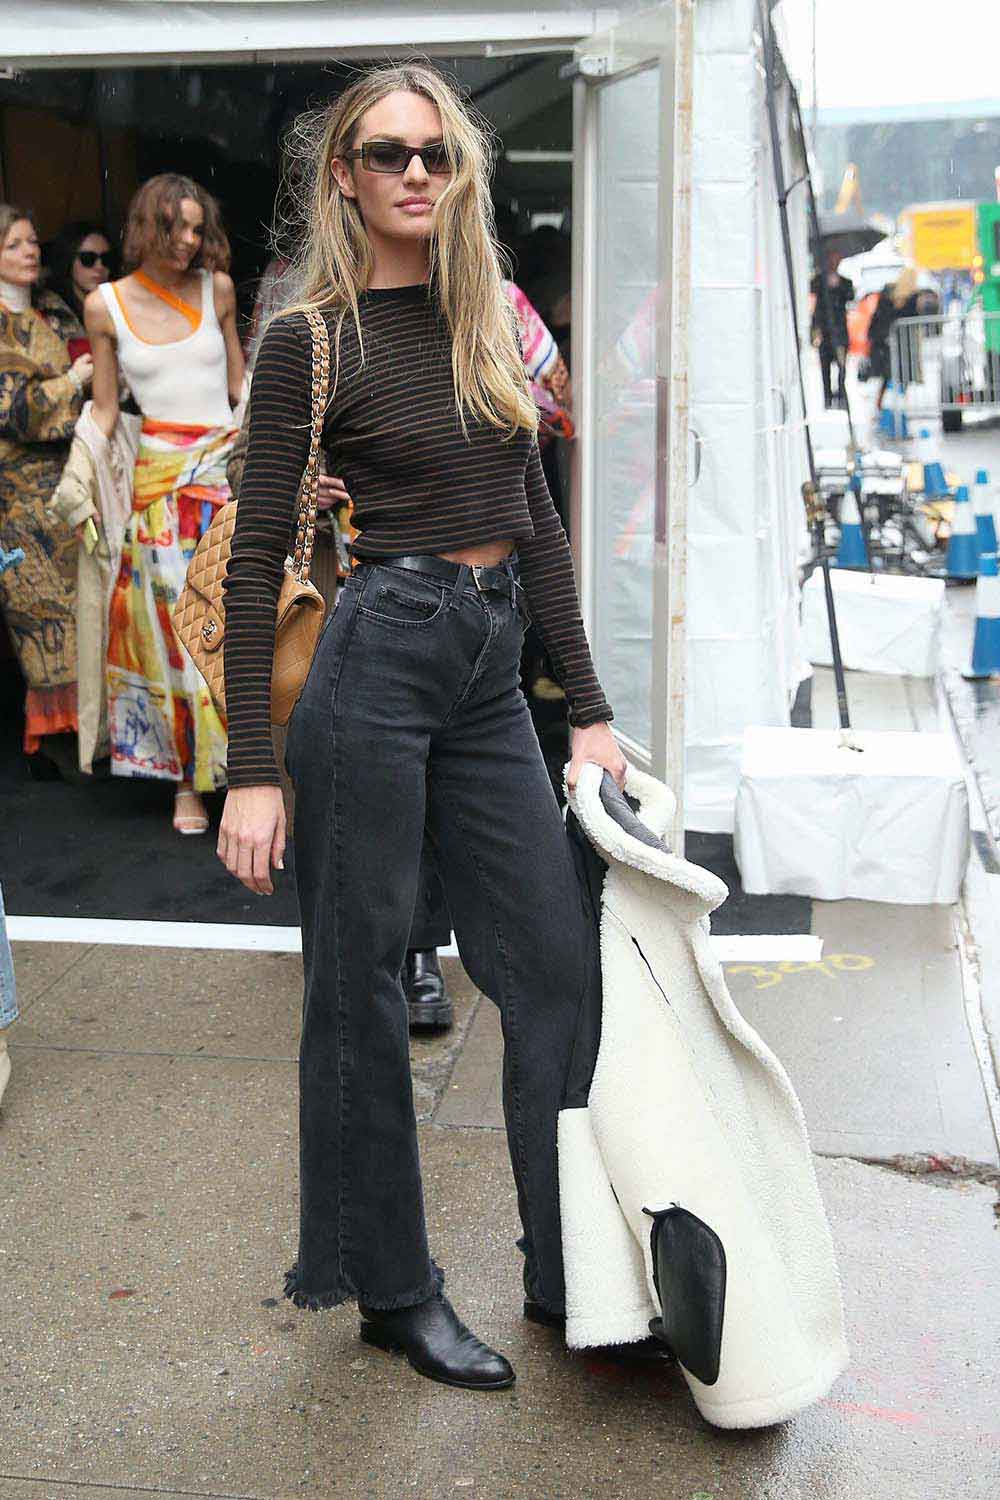 High Waisted Jeans Outfit x 2 – Candice Swanepoel Street Style